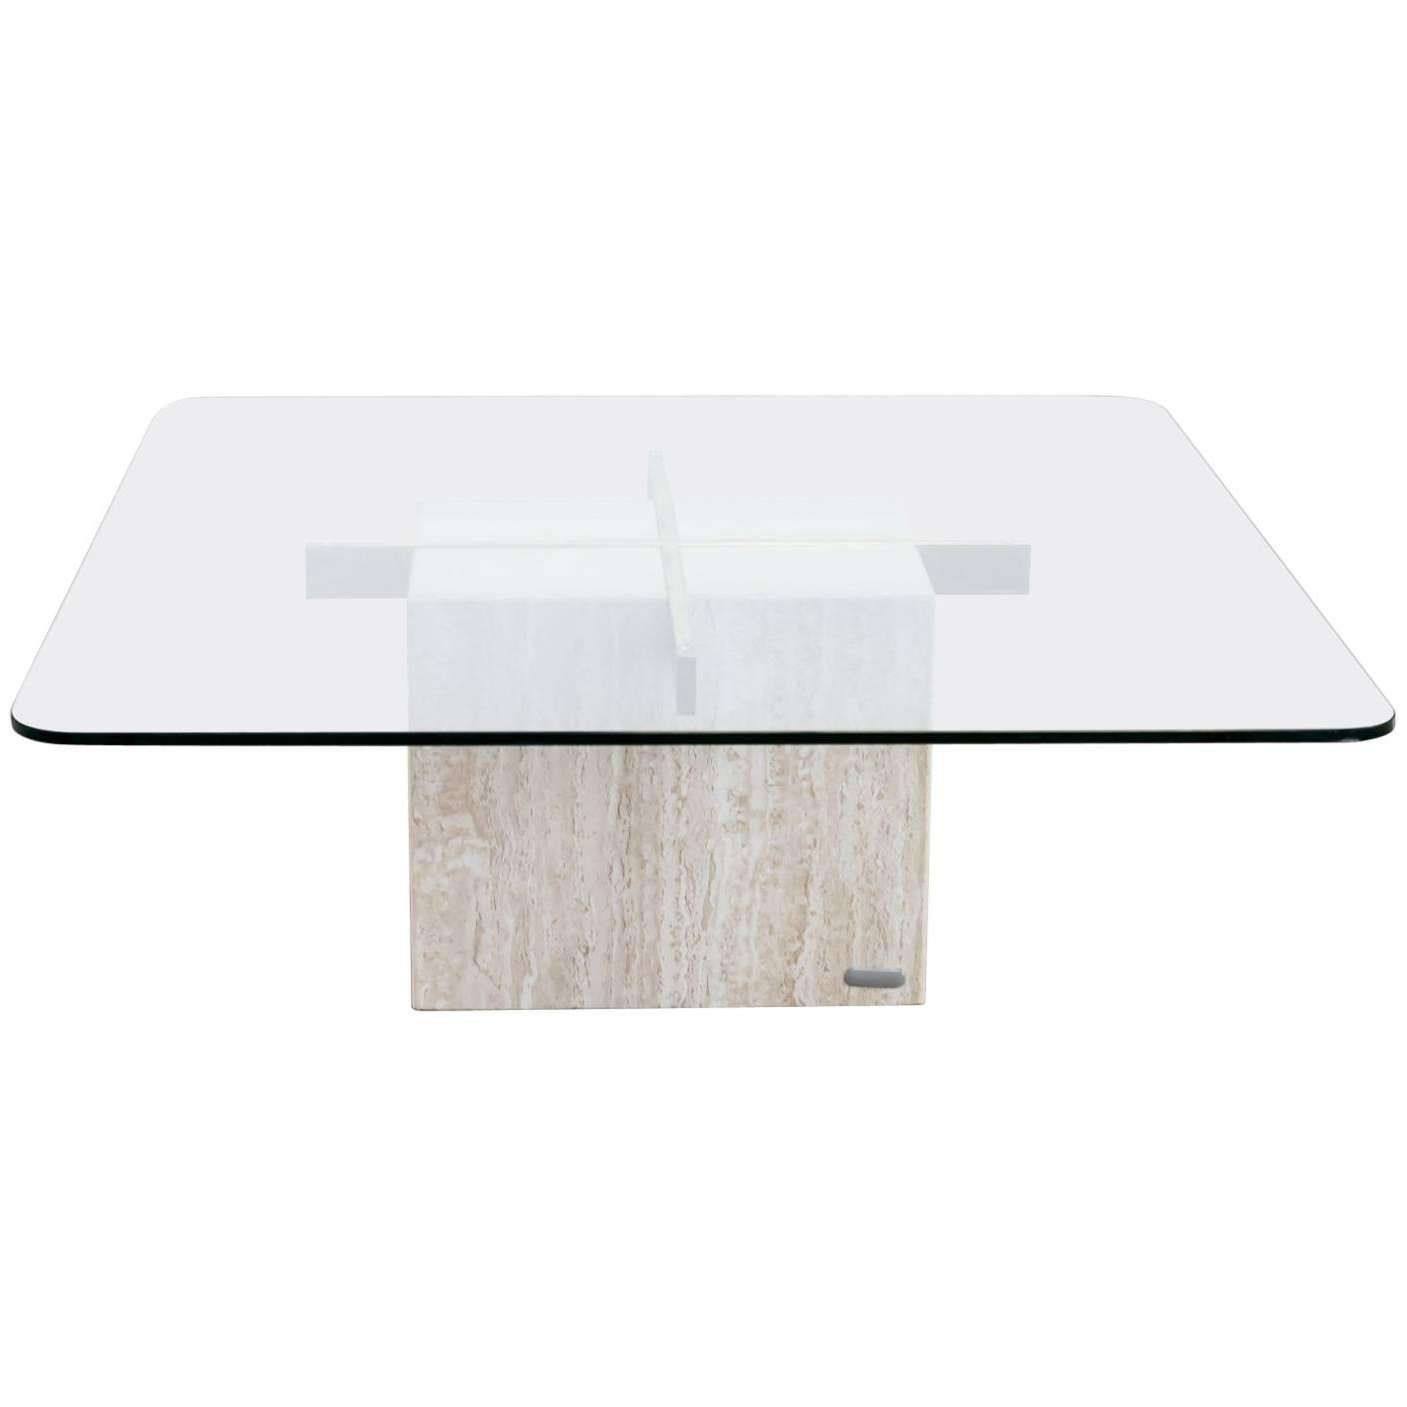 2018 Marble Base Glass Top Coffee Table Within Glass Top Coffee Table With Black Marble Base • Coffee Table Ideas (View 2 of 20)